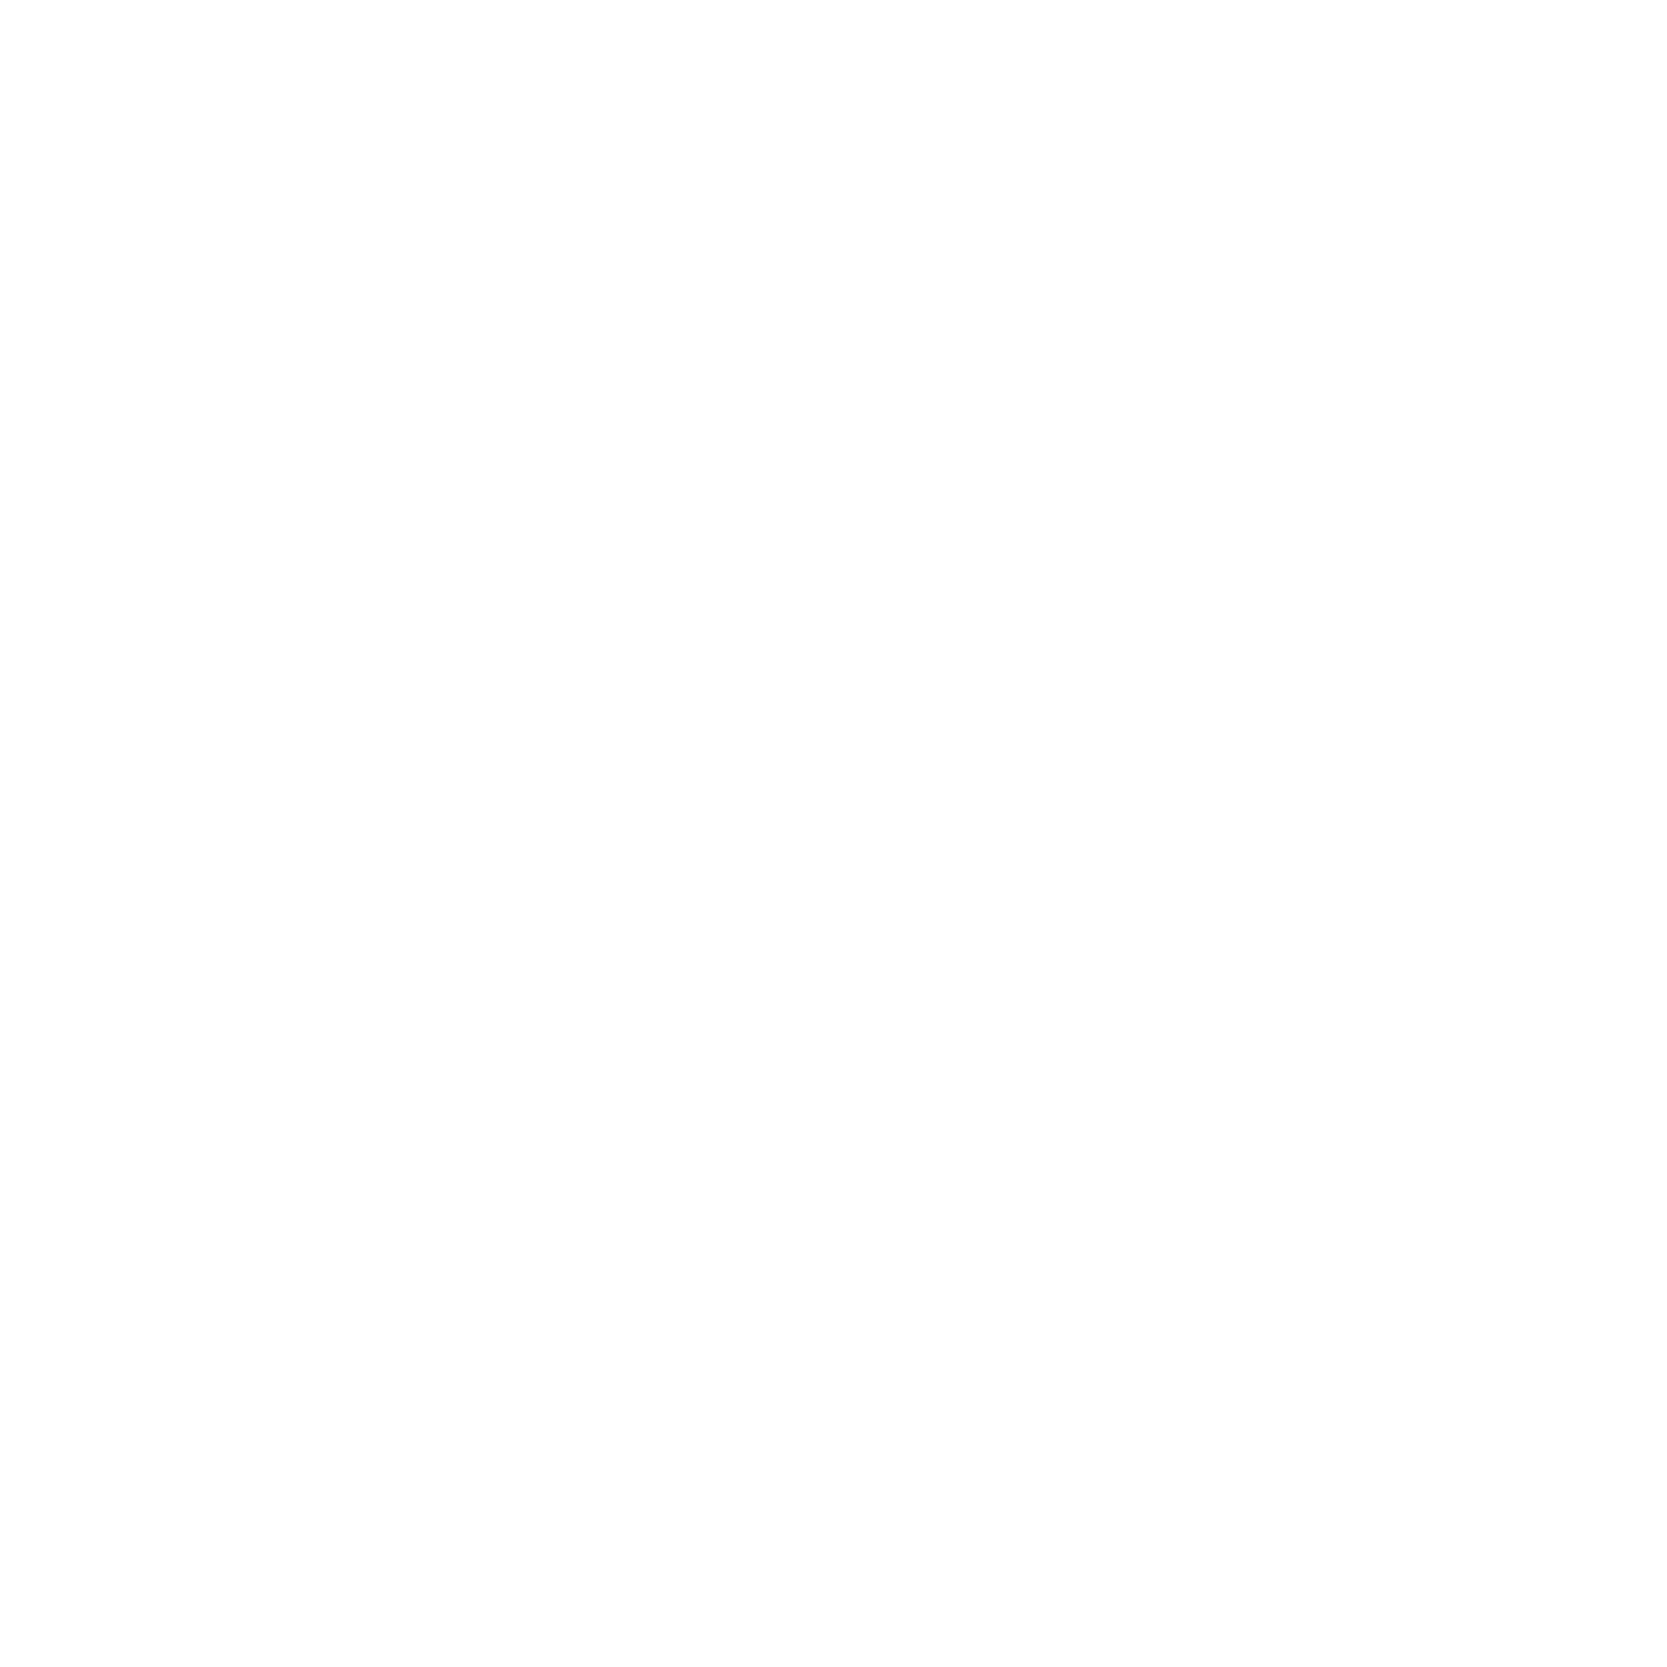 Pilatus Aircraft Ltd.